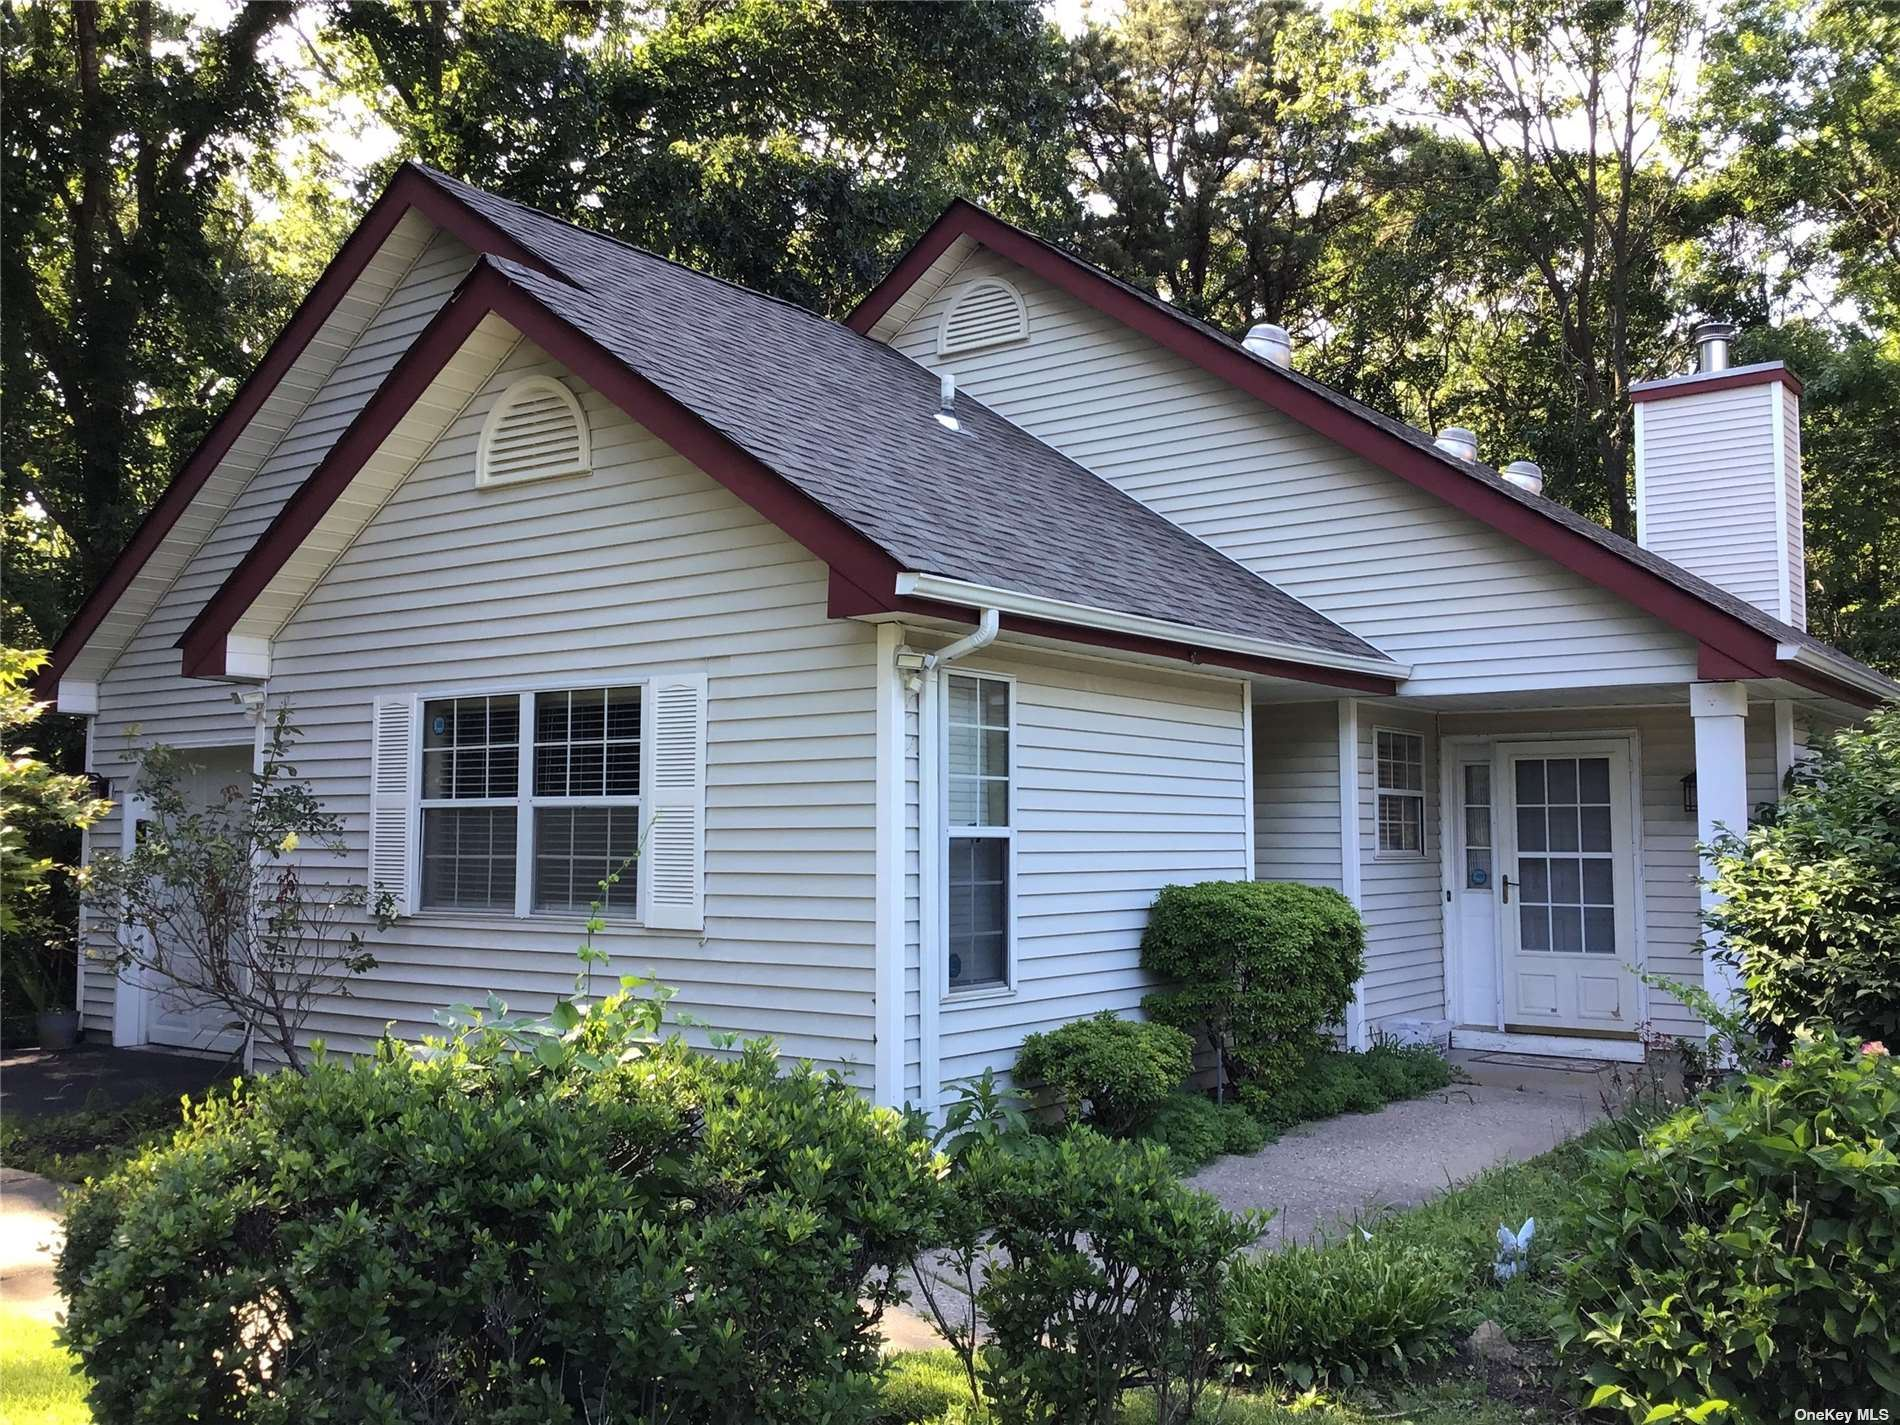 54 Strathmore On Gr #54, Middle Island, NY 11953 - MLS#: 3326621